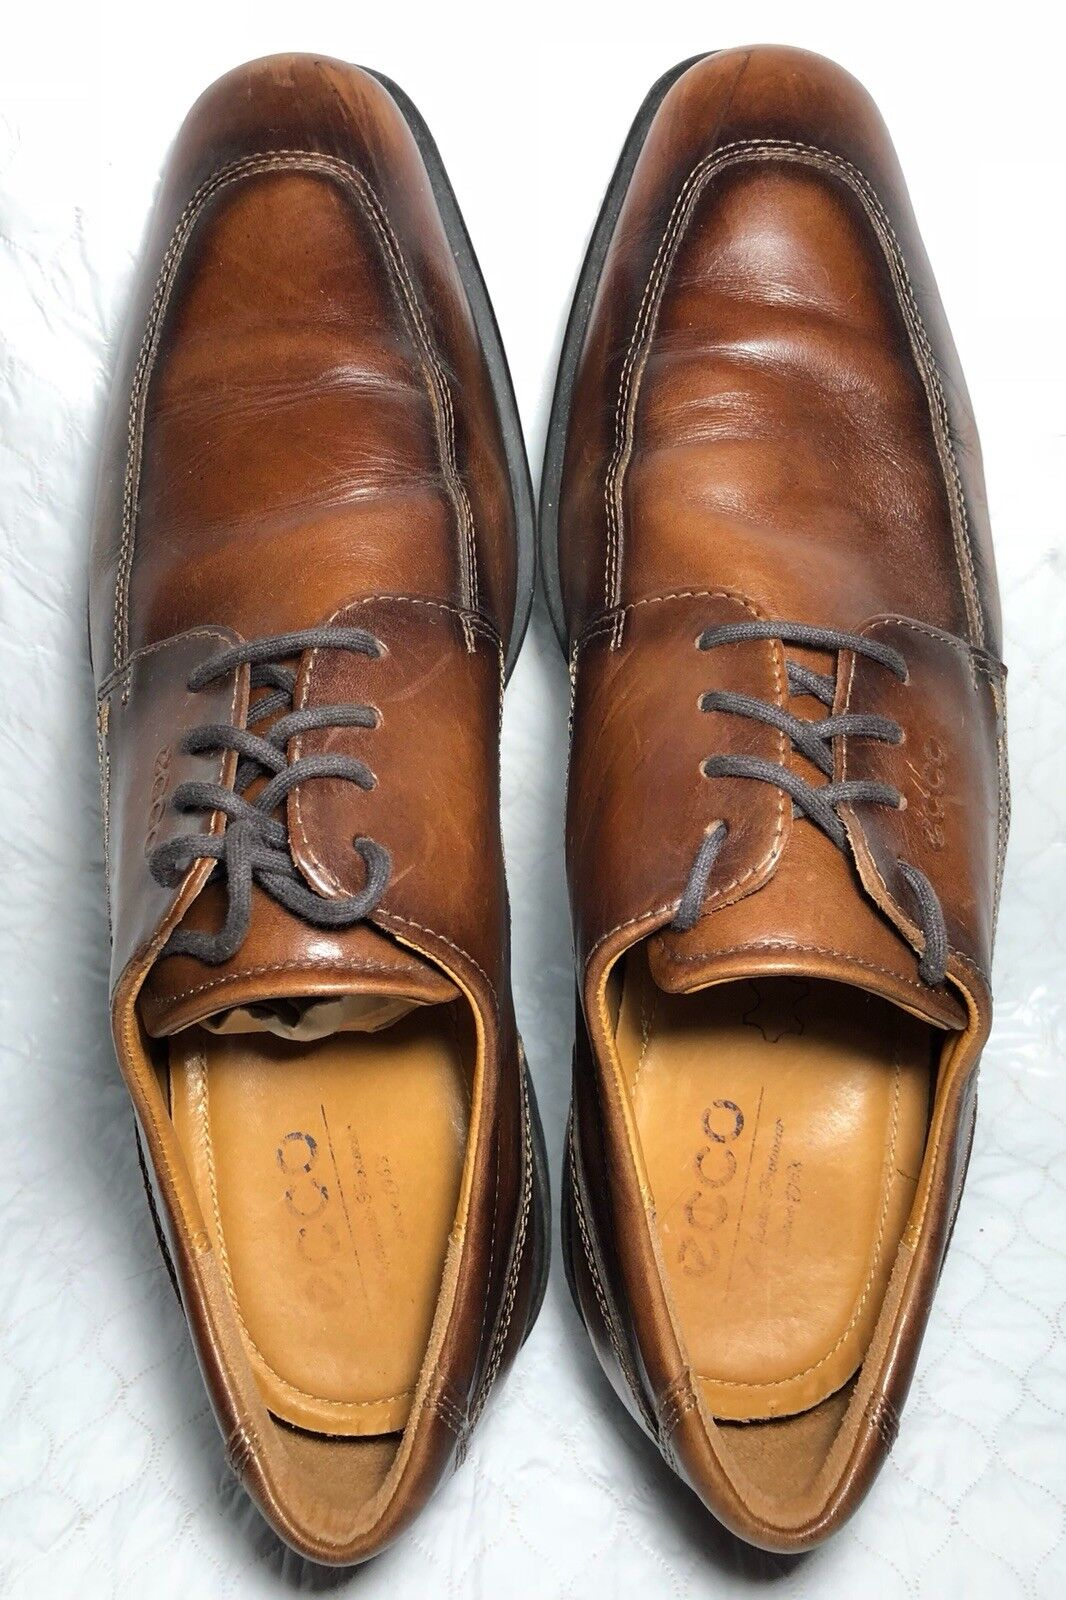 Ecco Men's Brown Leather Loafers Oxford new shoes shoes Size 45